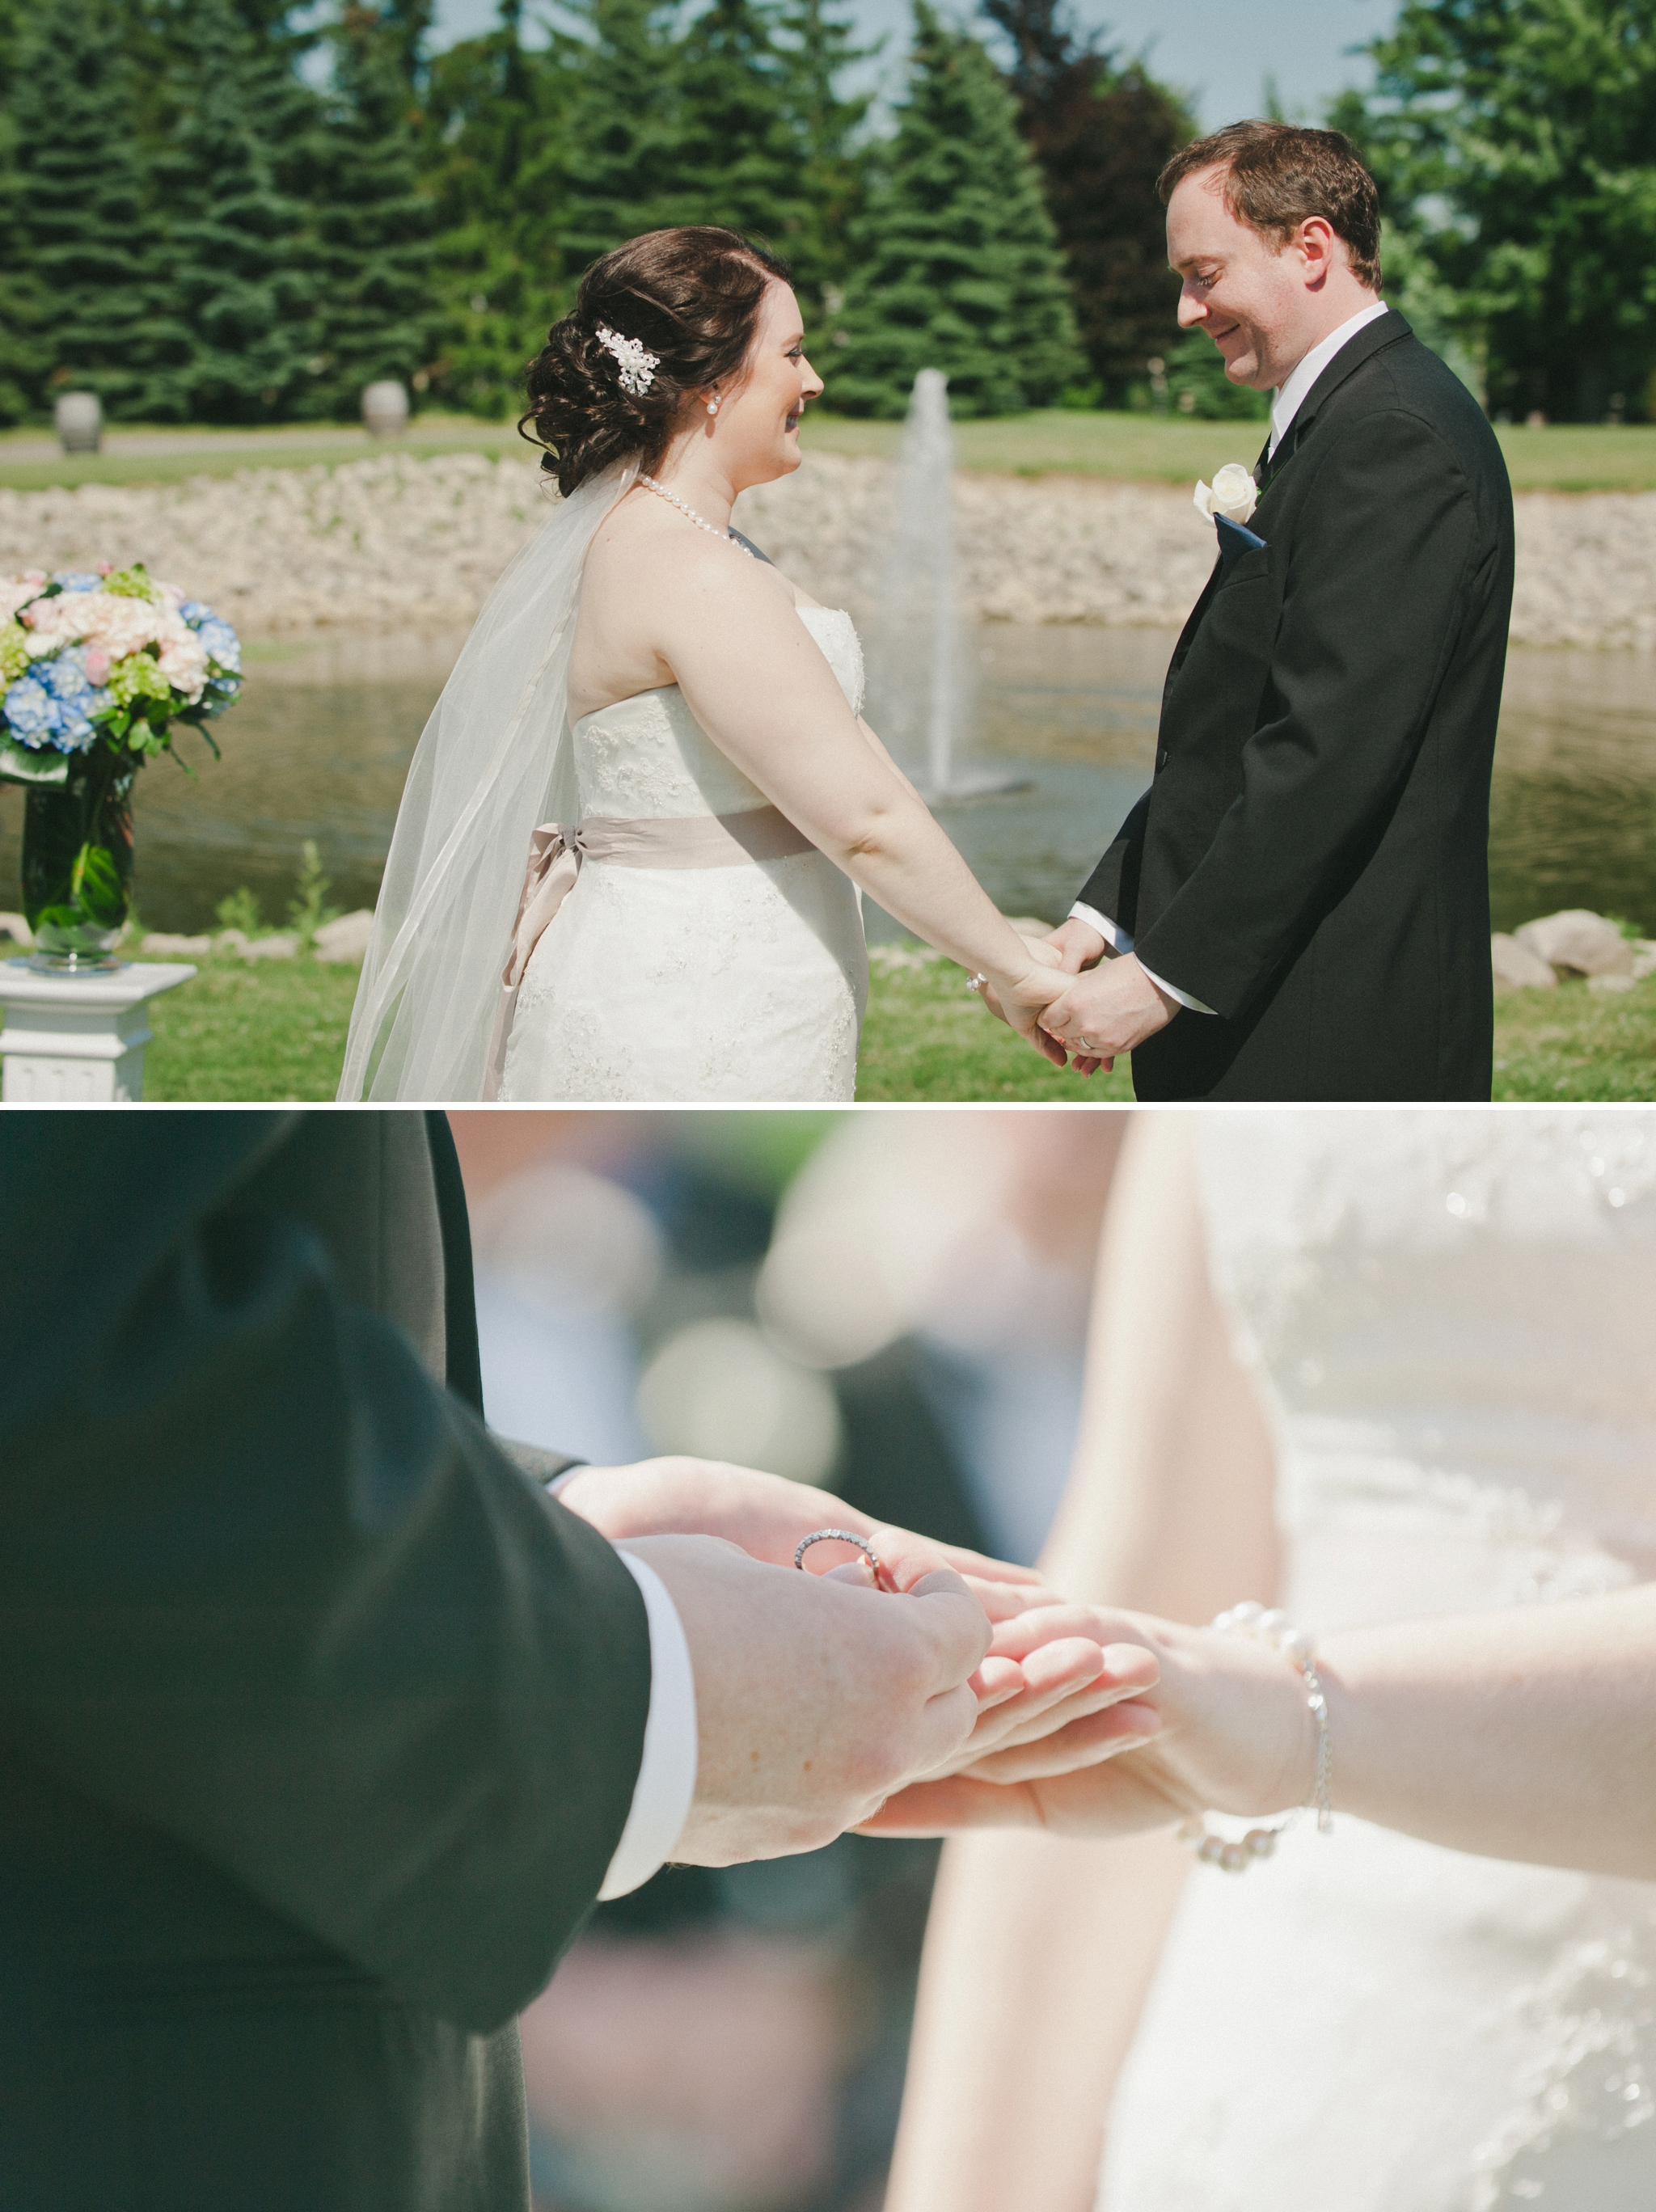 19-exchanging-rings-and-vows.jpg